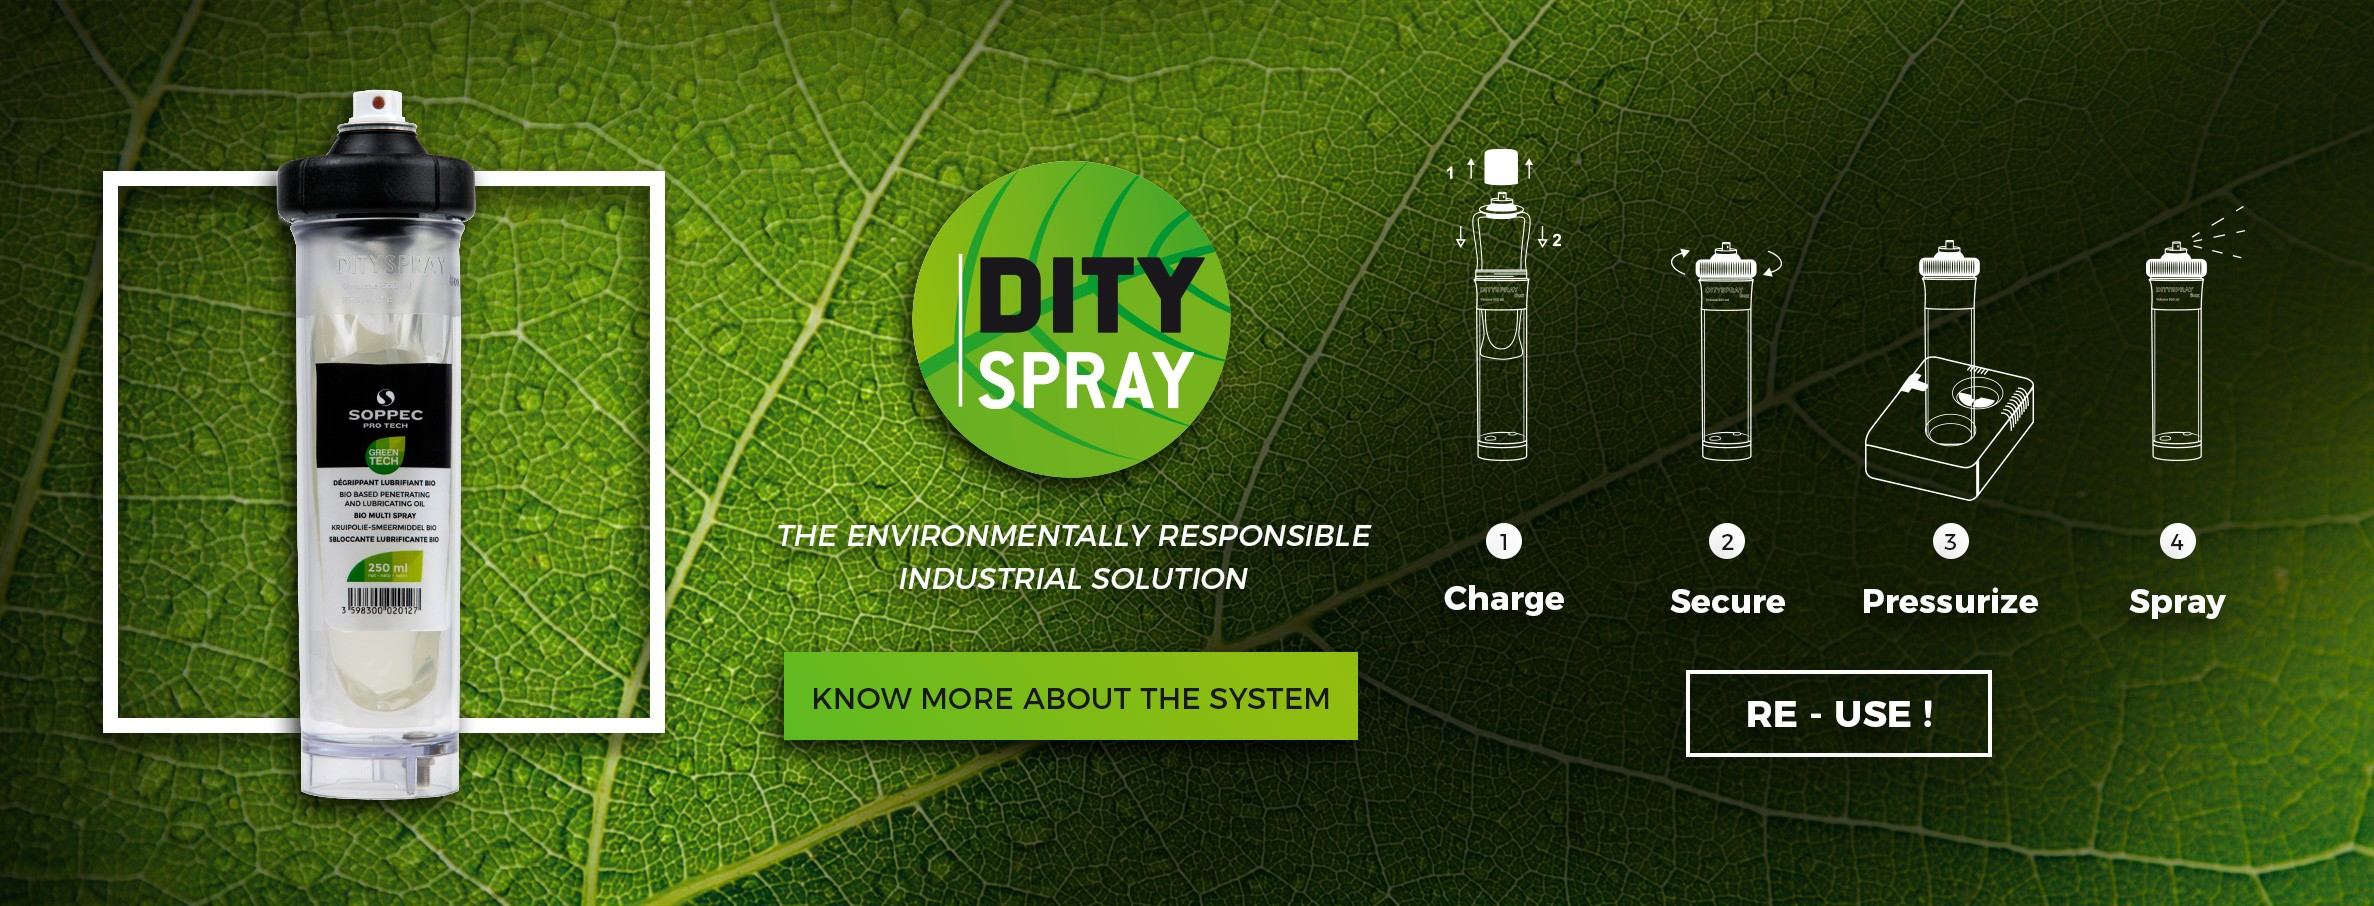 DITYSPRAY the refillable spray can